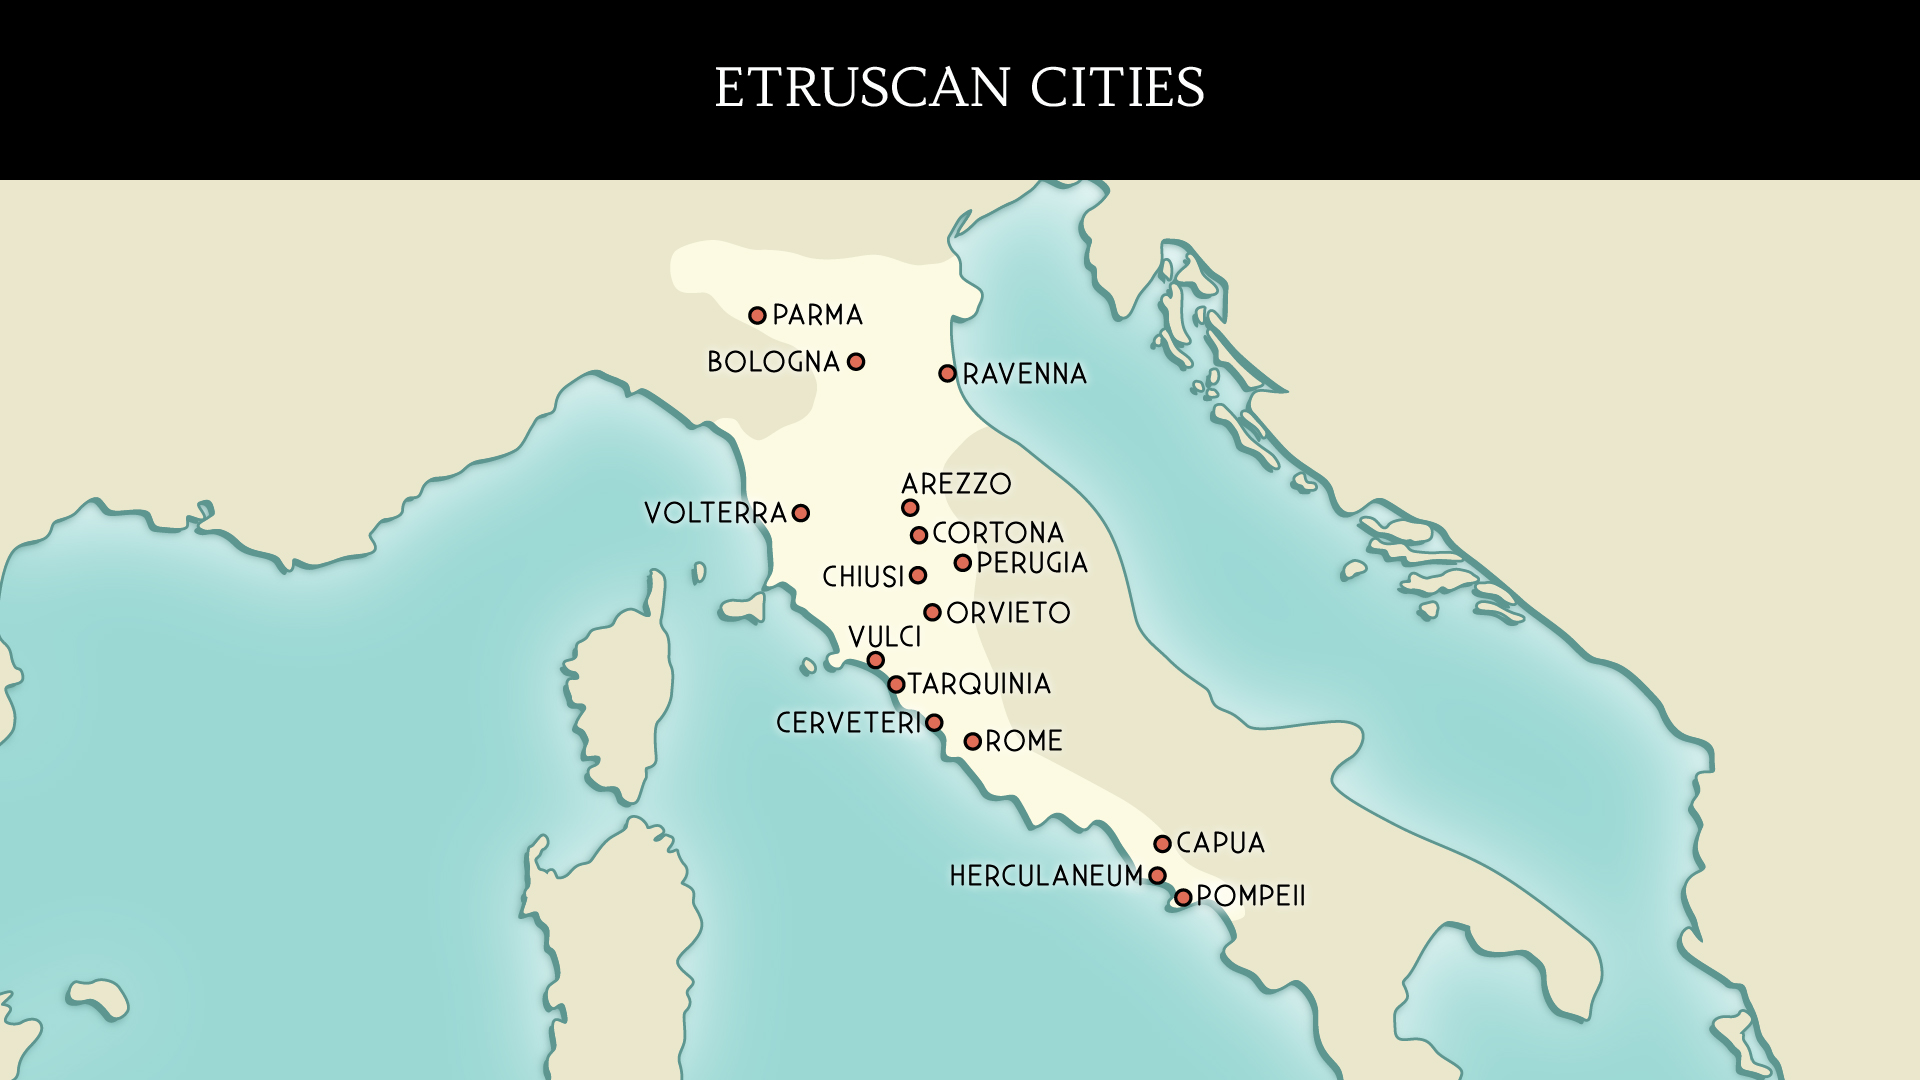 Map of the Etruscans cities